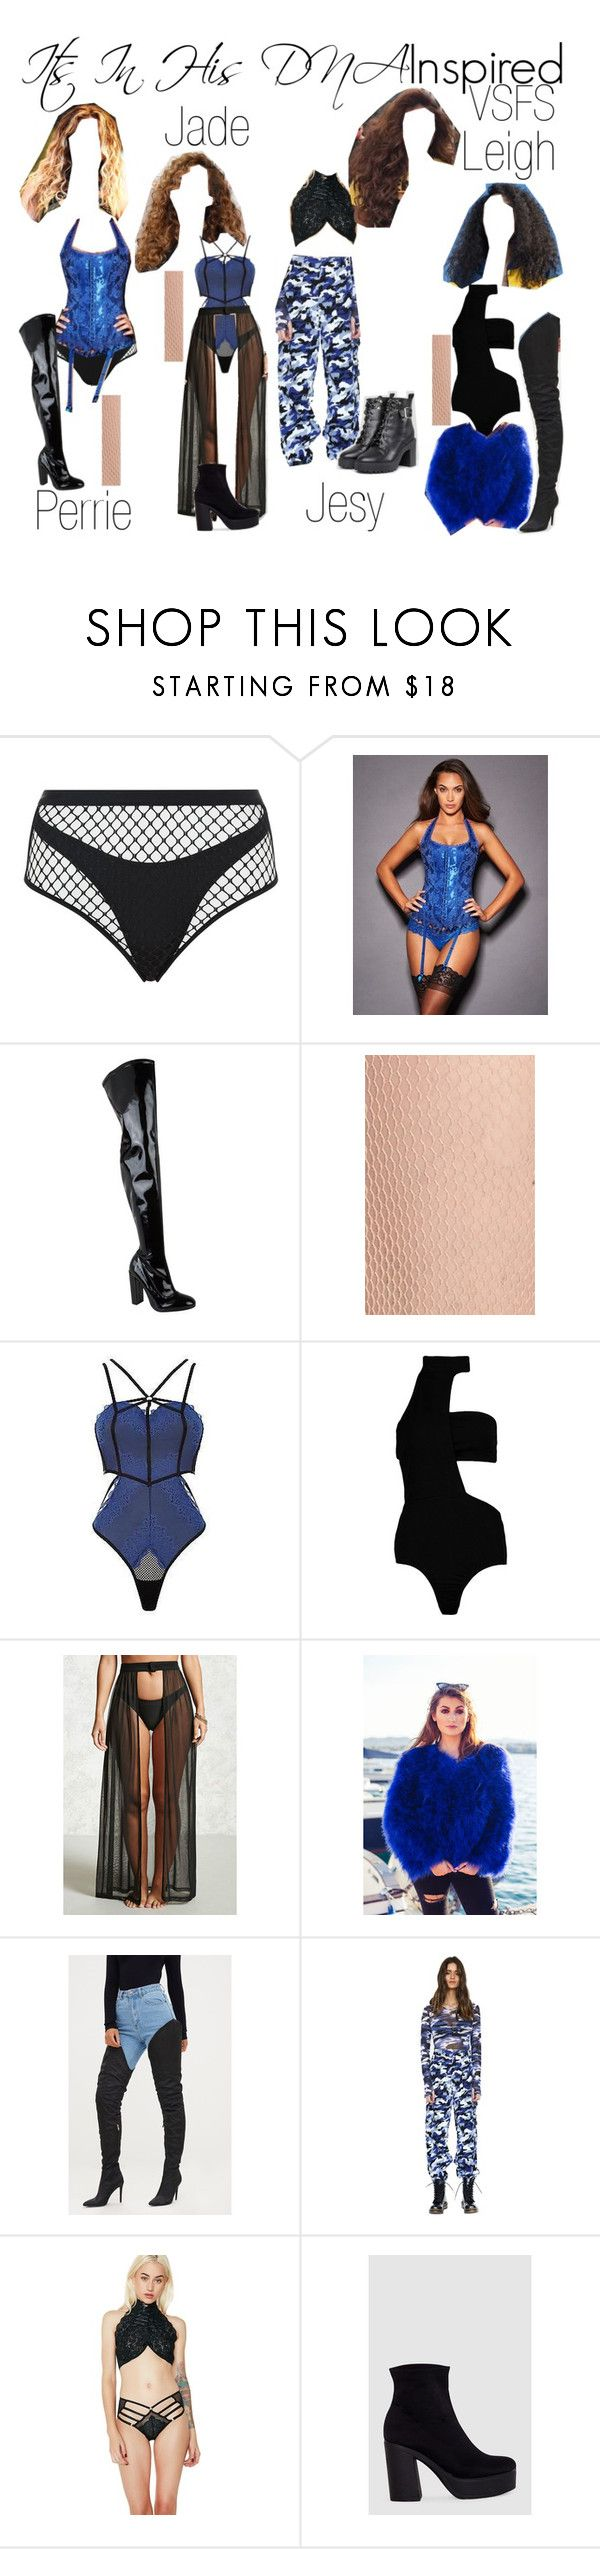 """""""Little Mix Victoria's Secret Fashion Show Inspired"""" by katiehorror ❤ liked on Polyvore featuring Agent Provocateur, Carvela Kurt Geiger, Nordstrom, Ann Summers, Boohoo, Forever 21 and ASOS"""